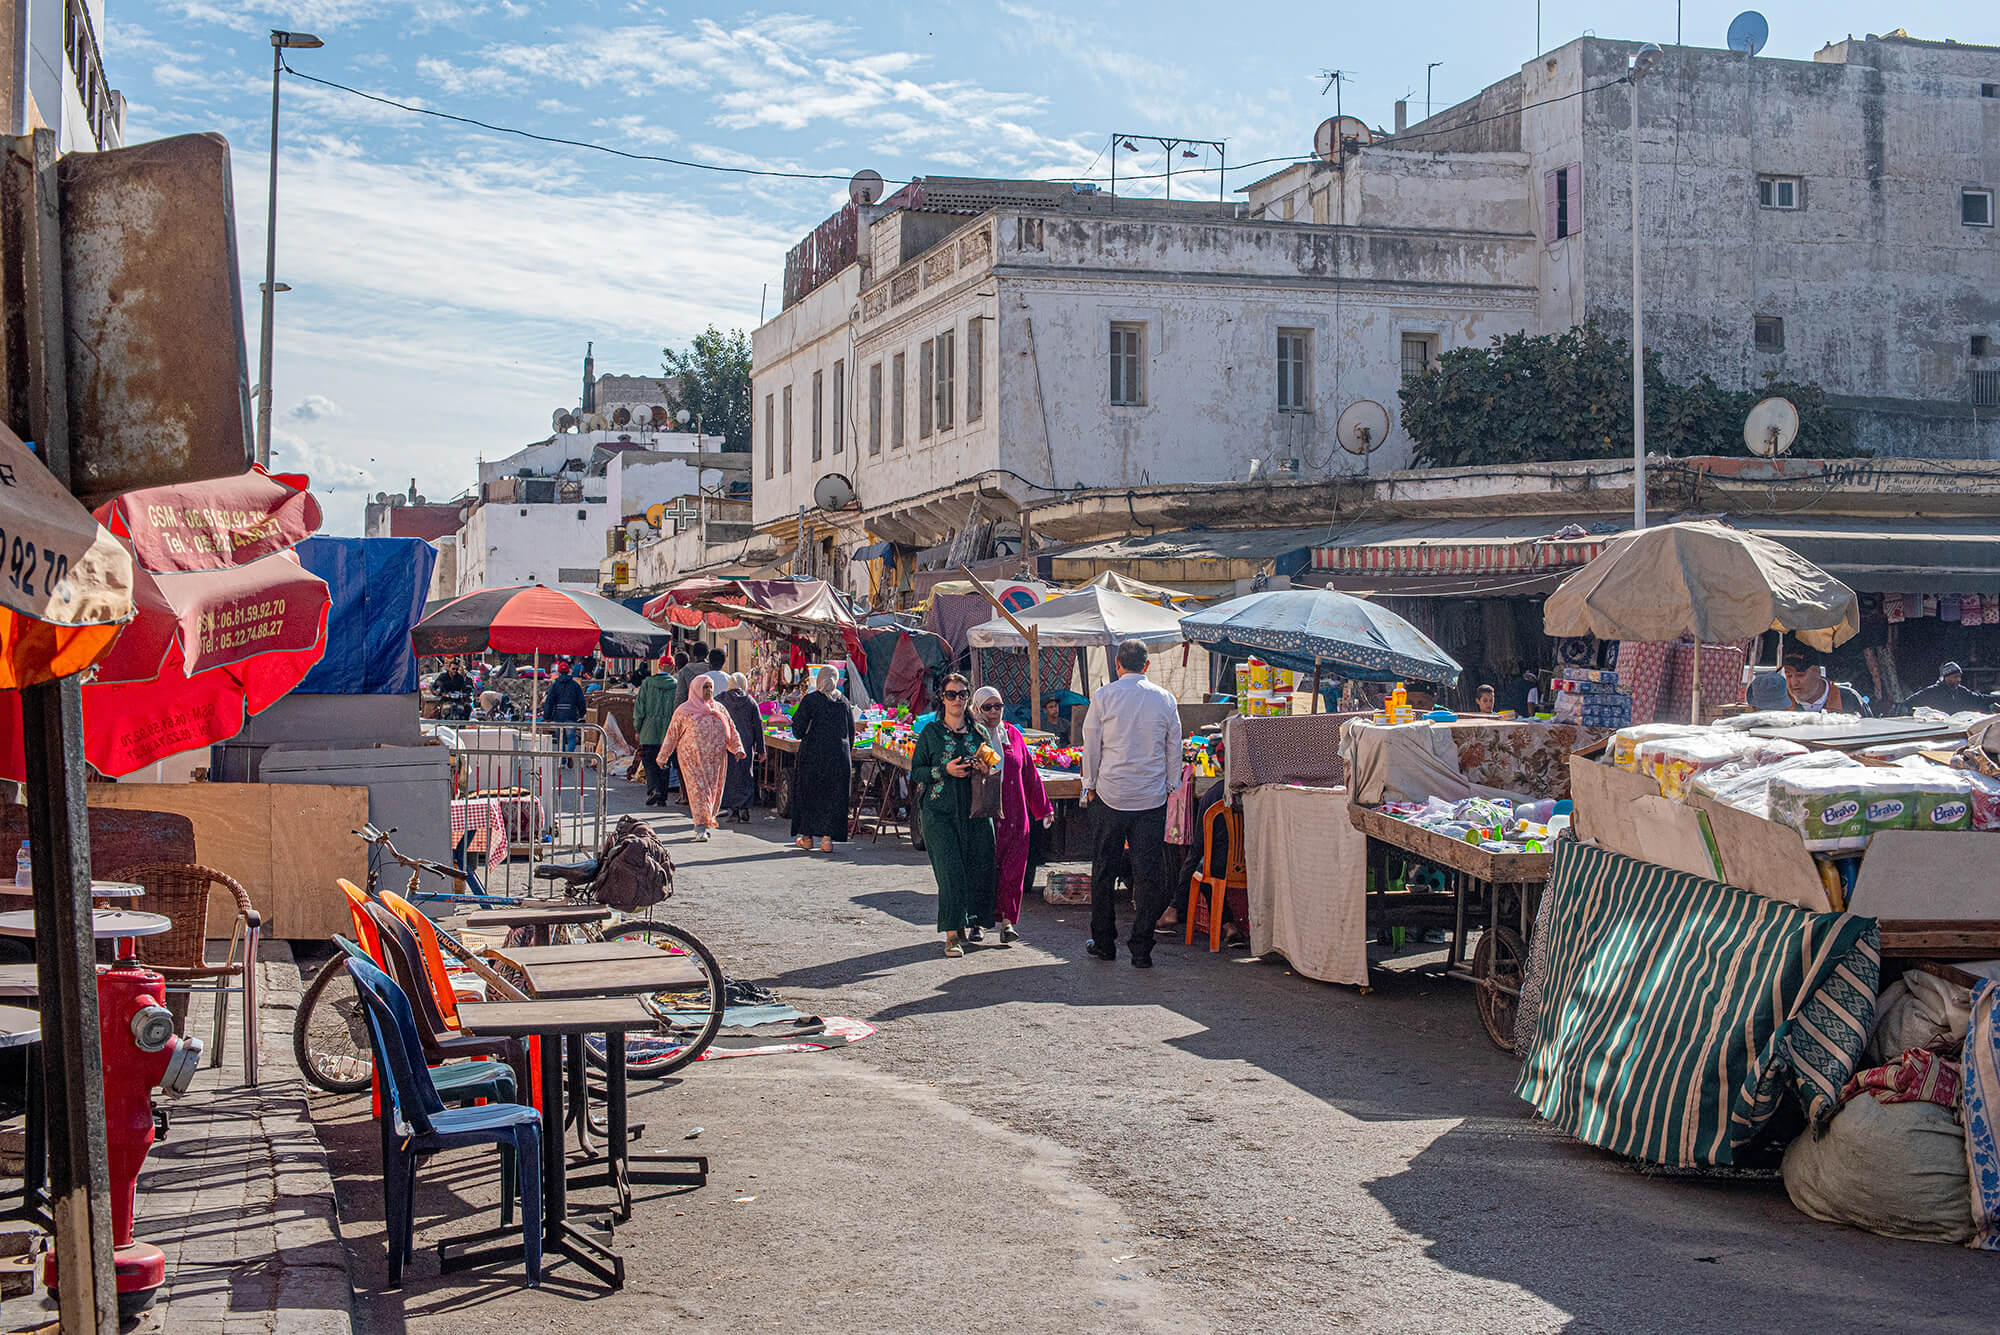 Sahara Desert Tour - Discover Casablanca - What to See and What to Do - Ancienne Medina